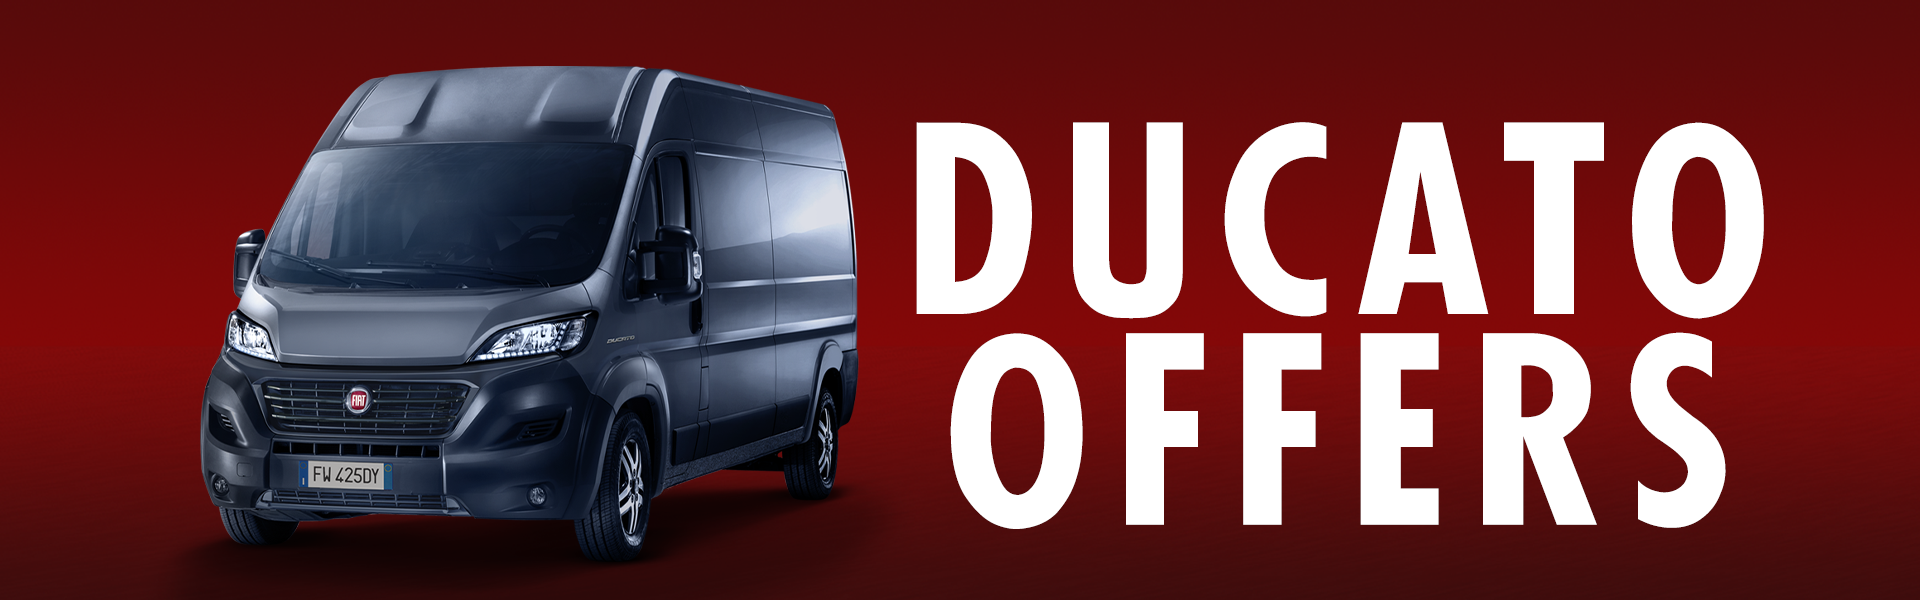 wide-banner-Ducato offers.png